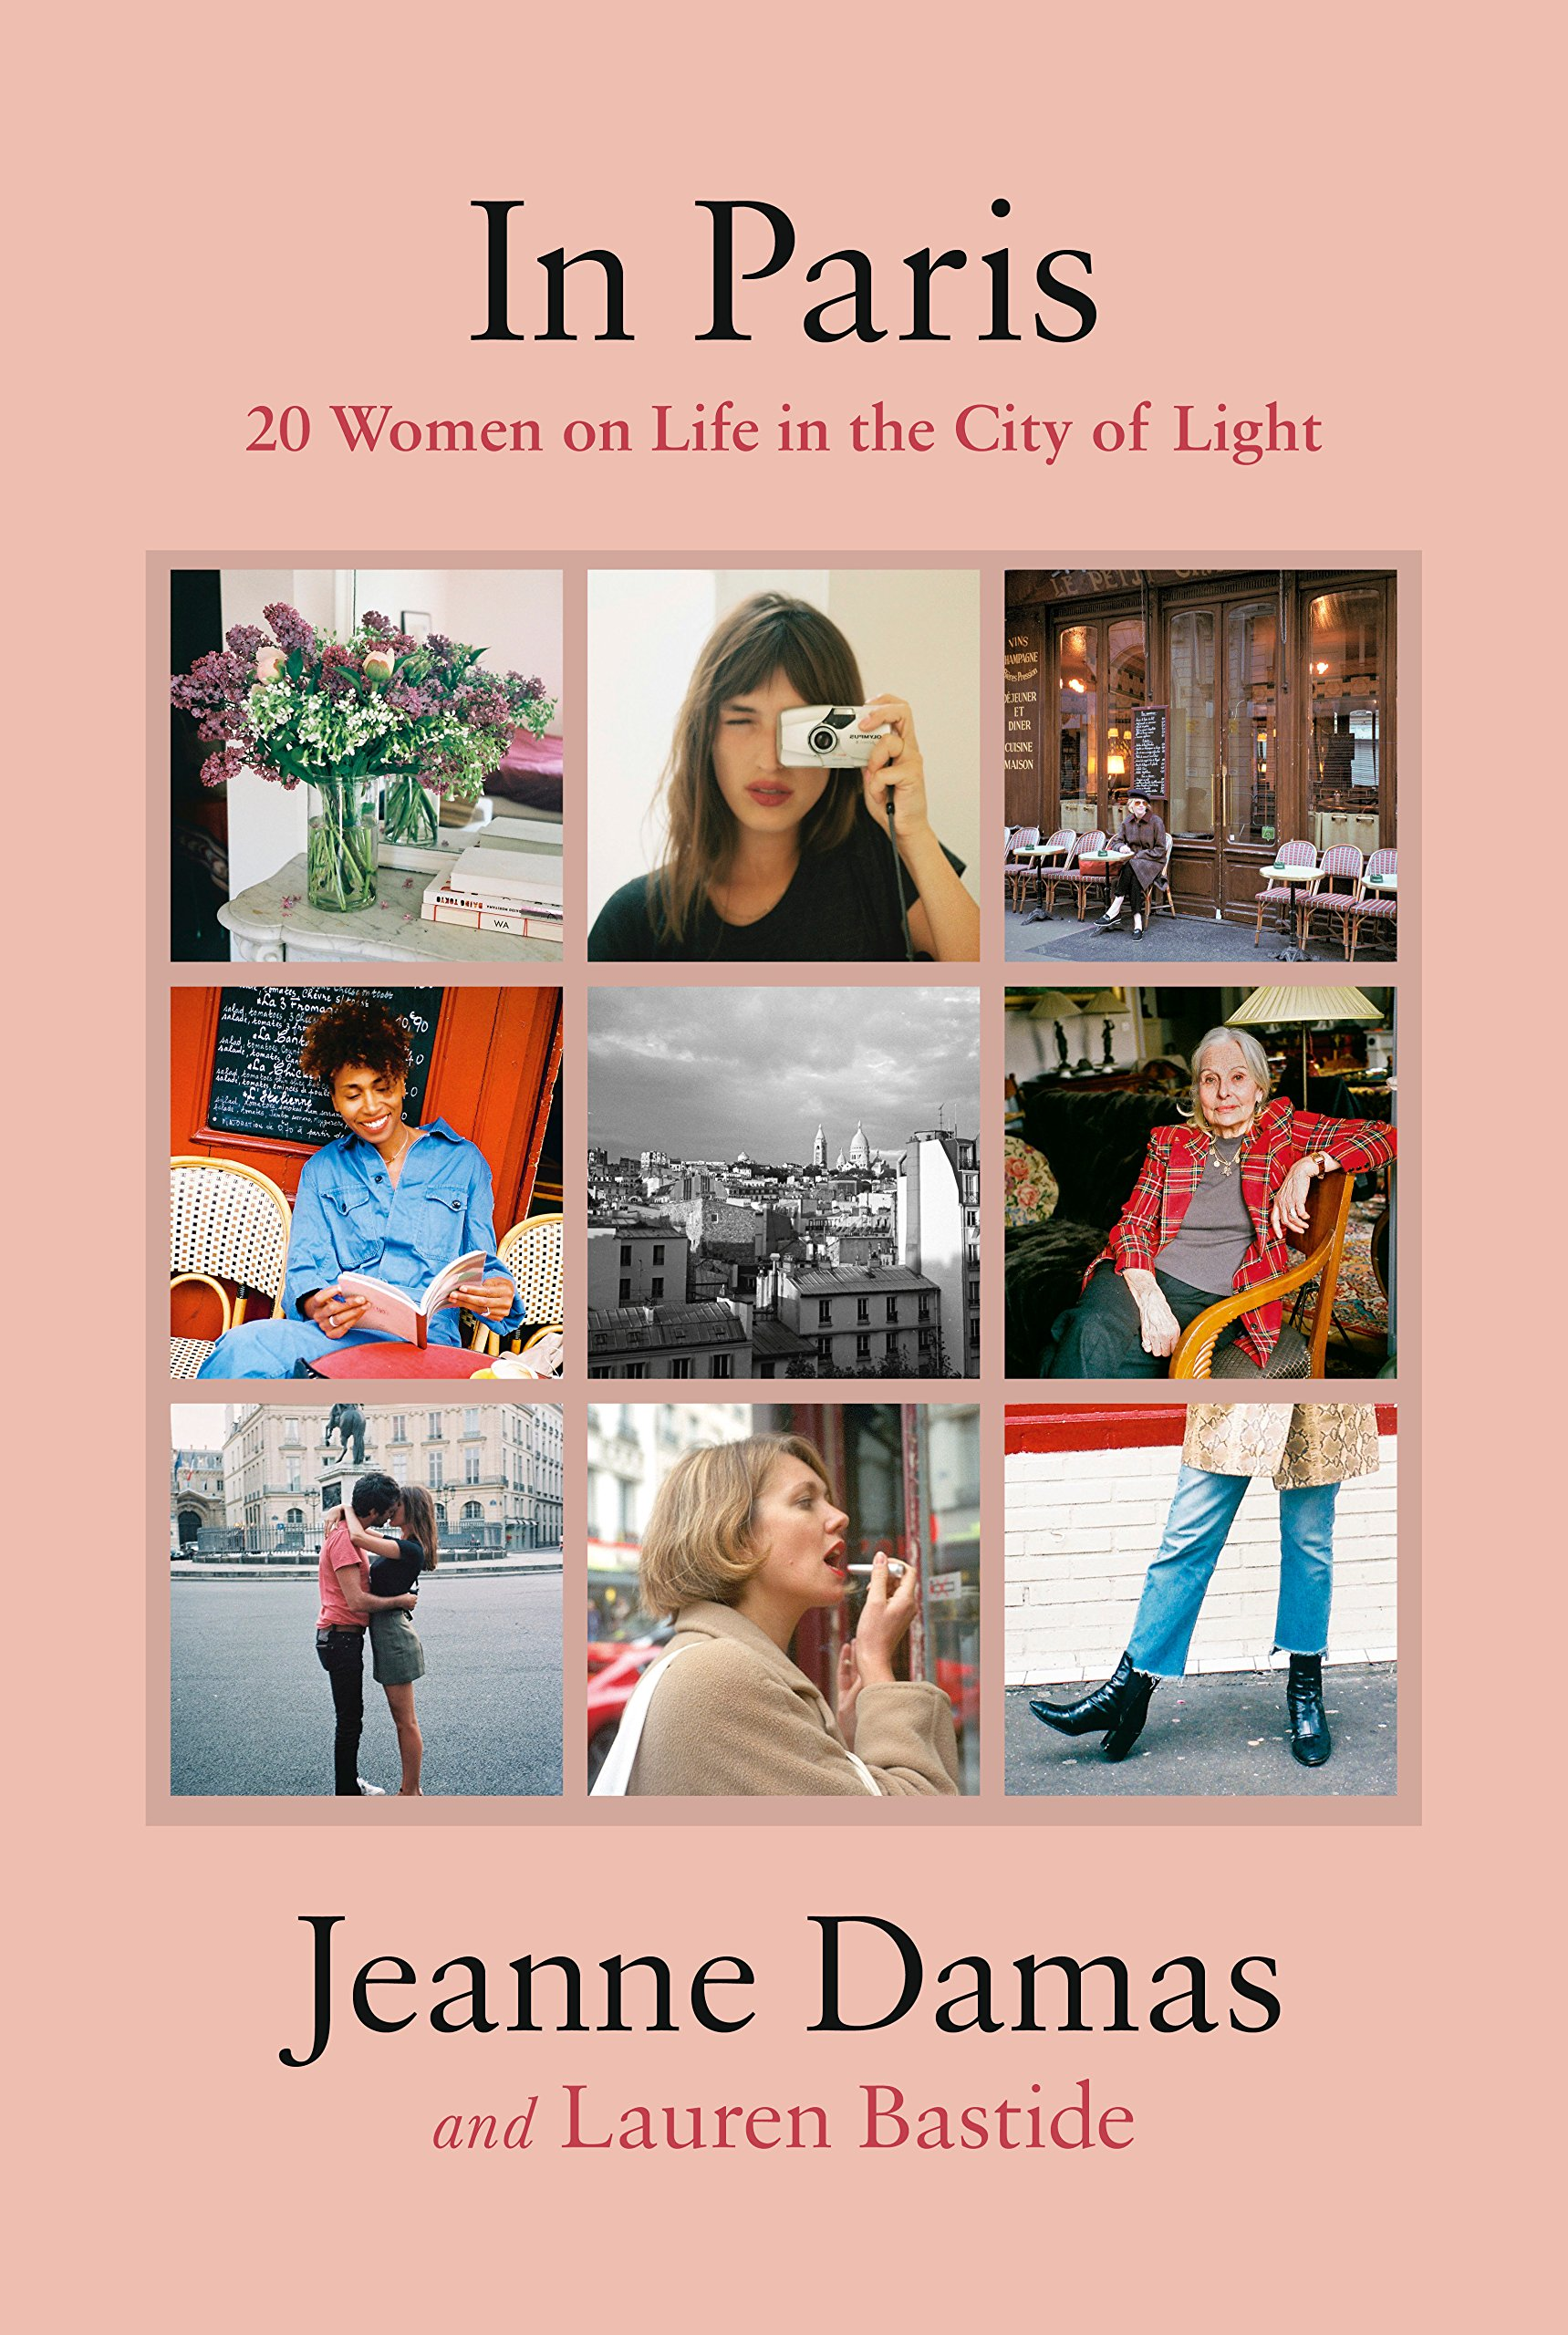 Salle De Bain Jeanne Damas ~ amazon fr in paris 20 women on life in the city of light jeanne